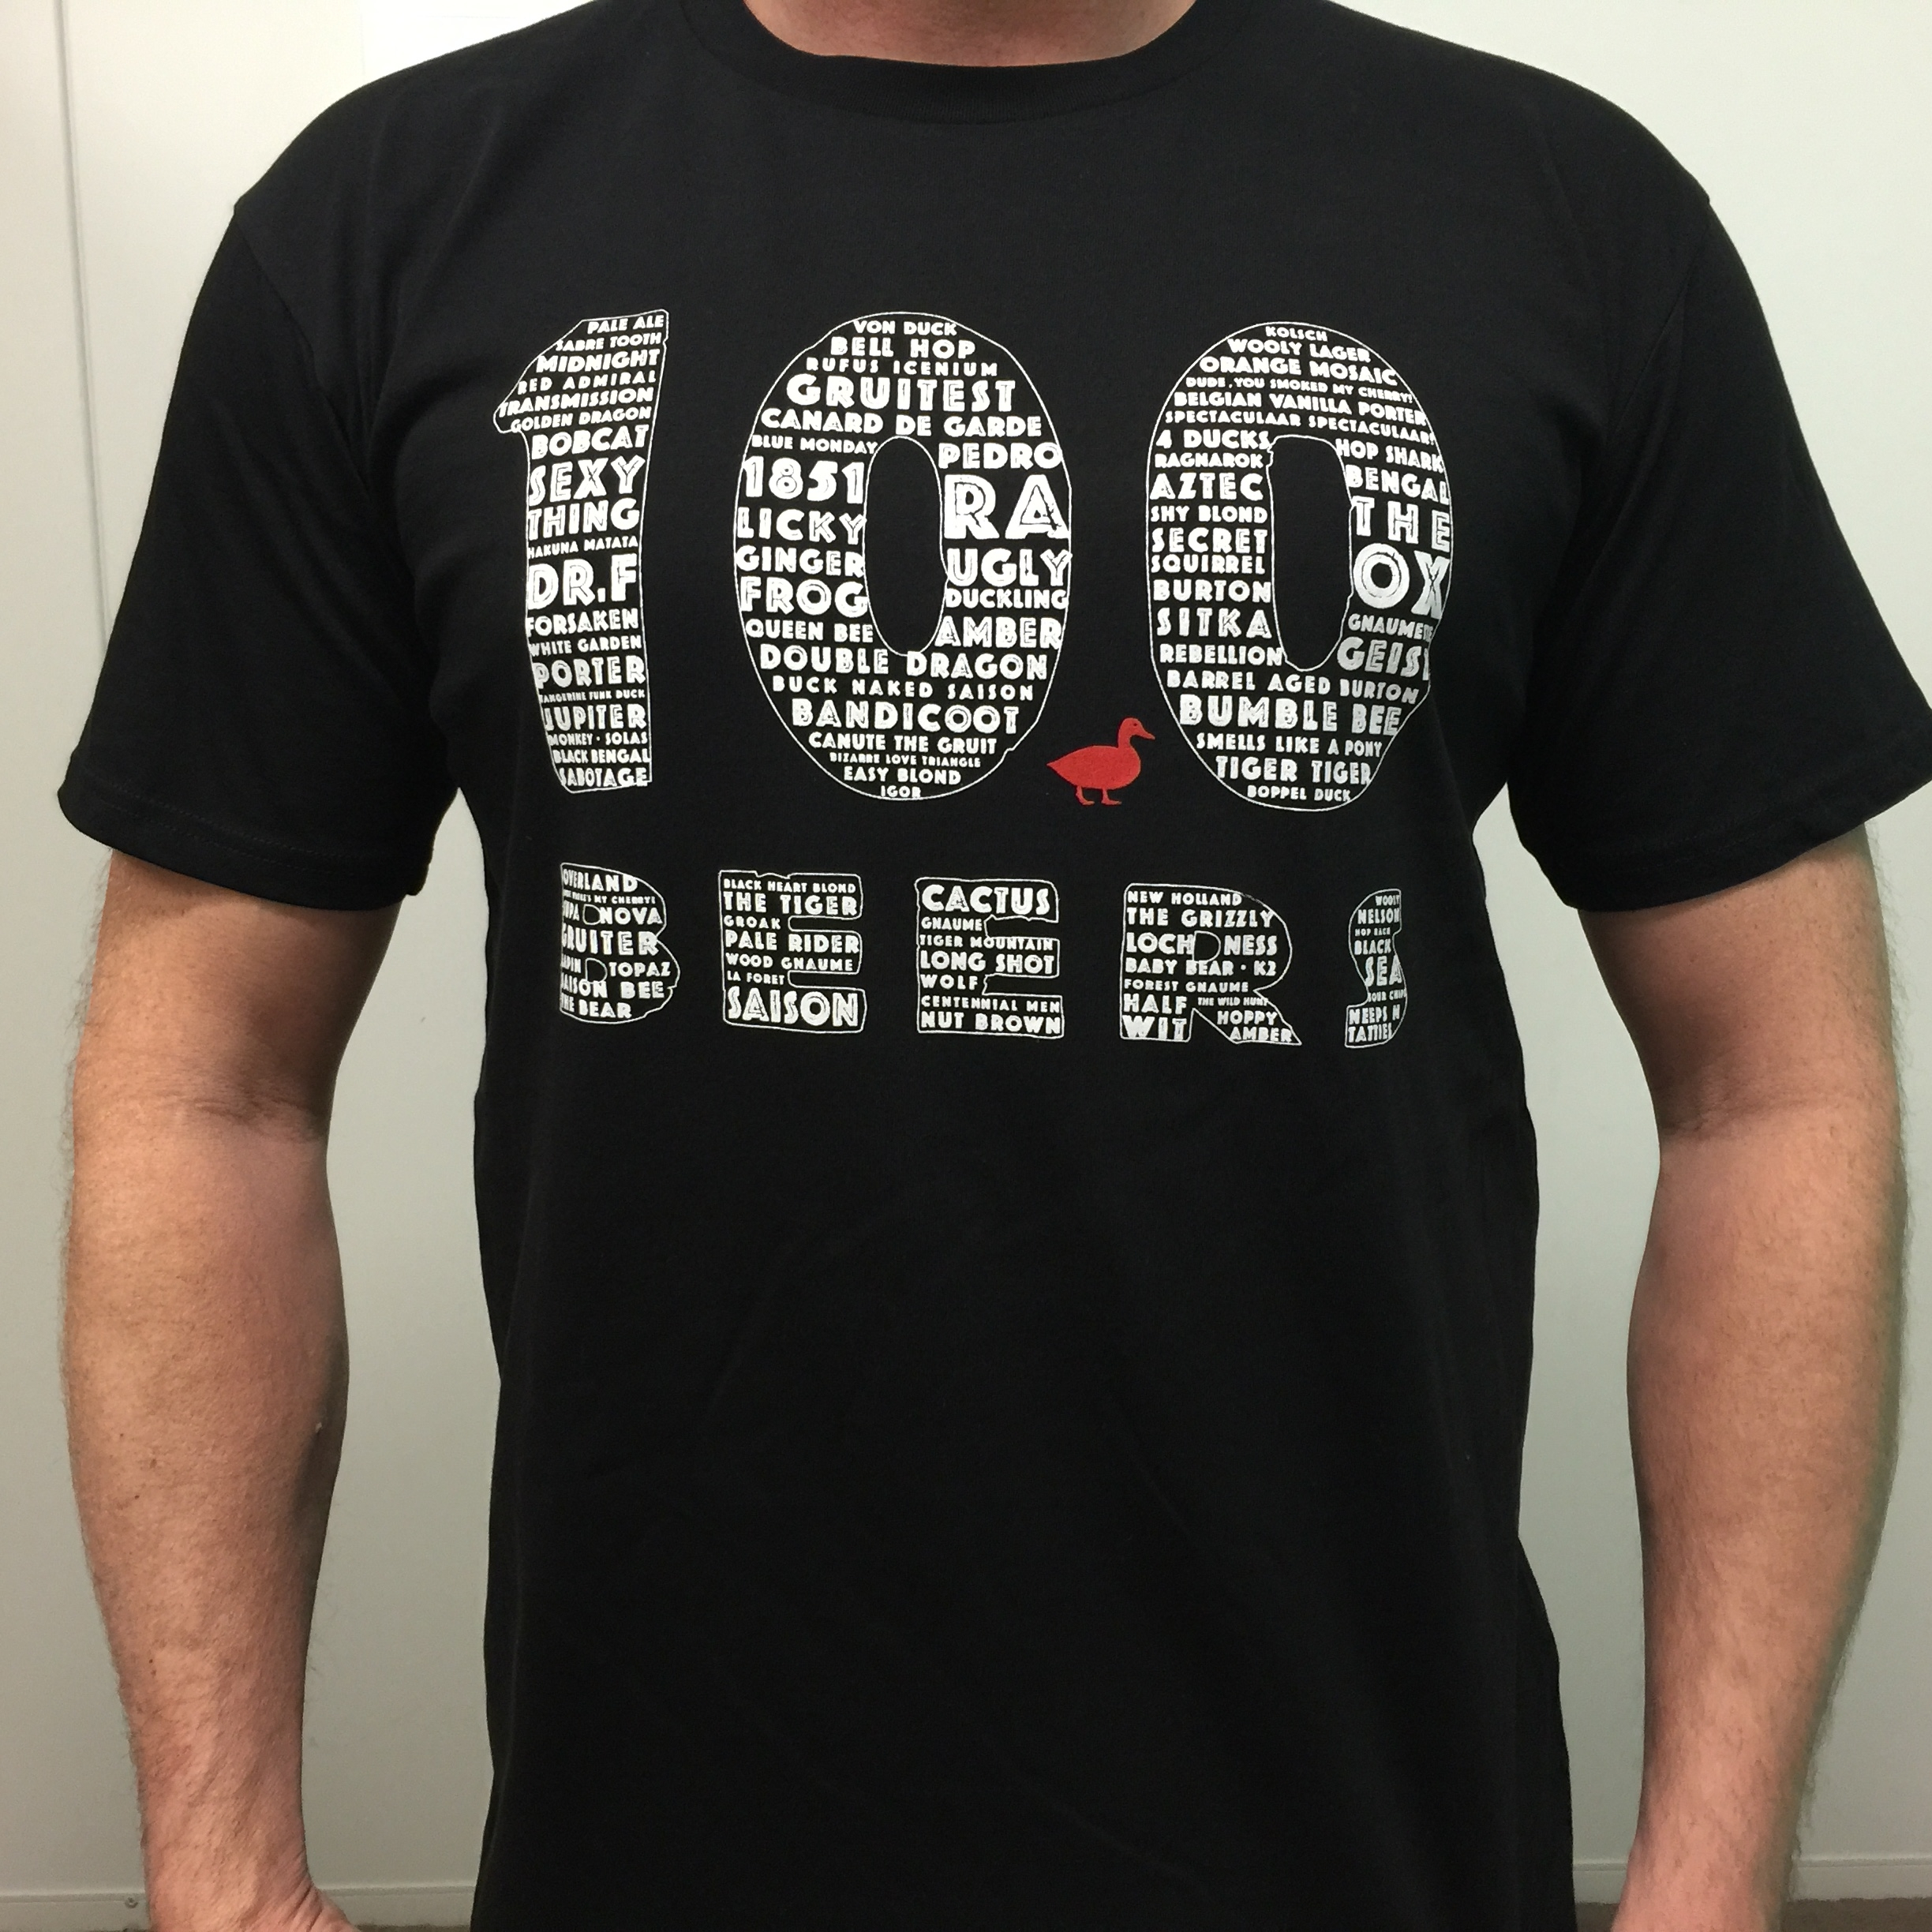 Mens 100 beers t'shirt – price includes postage